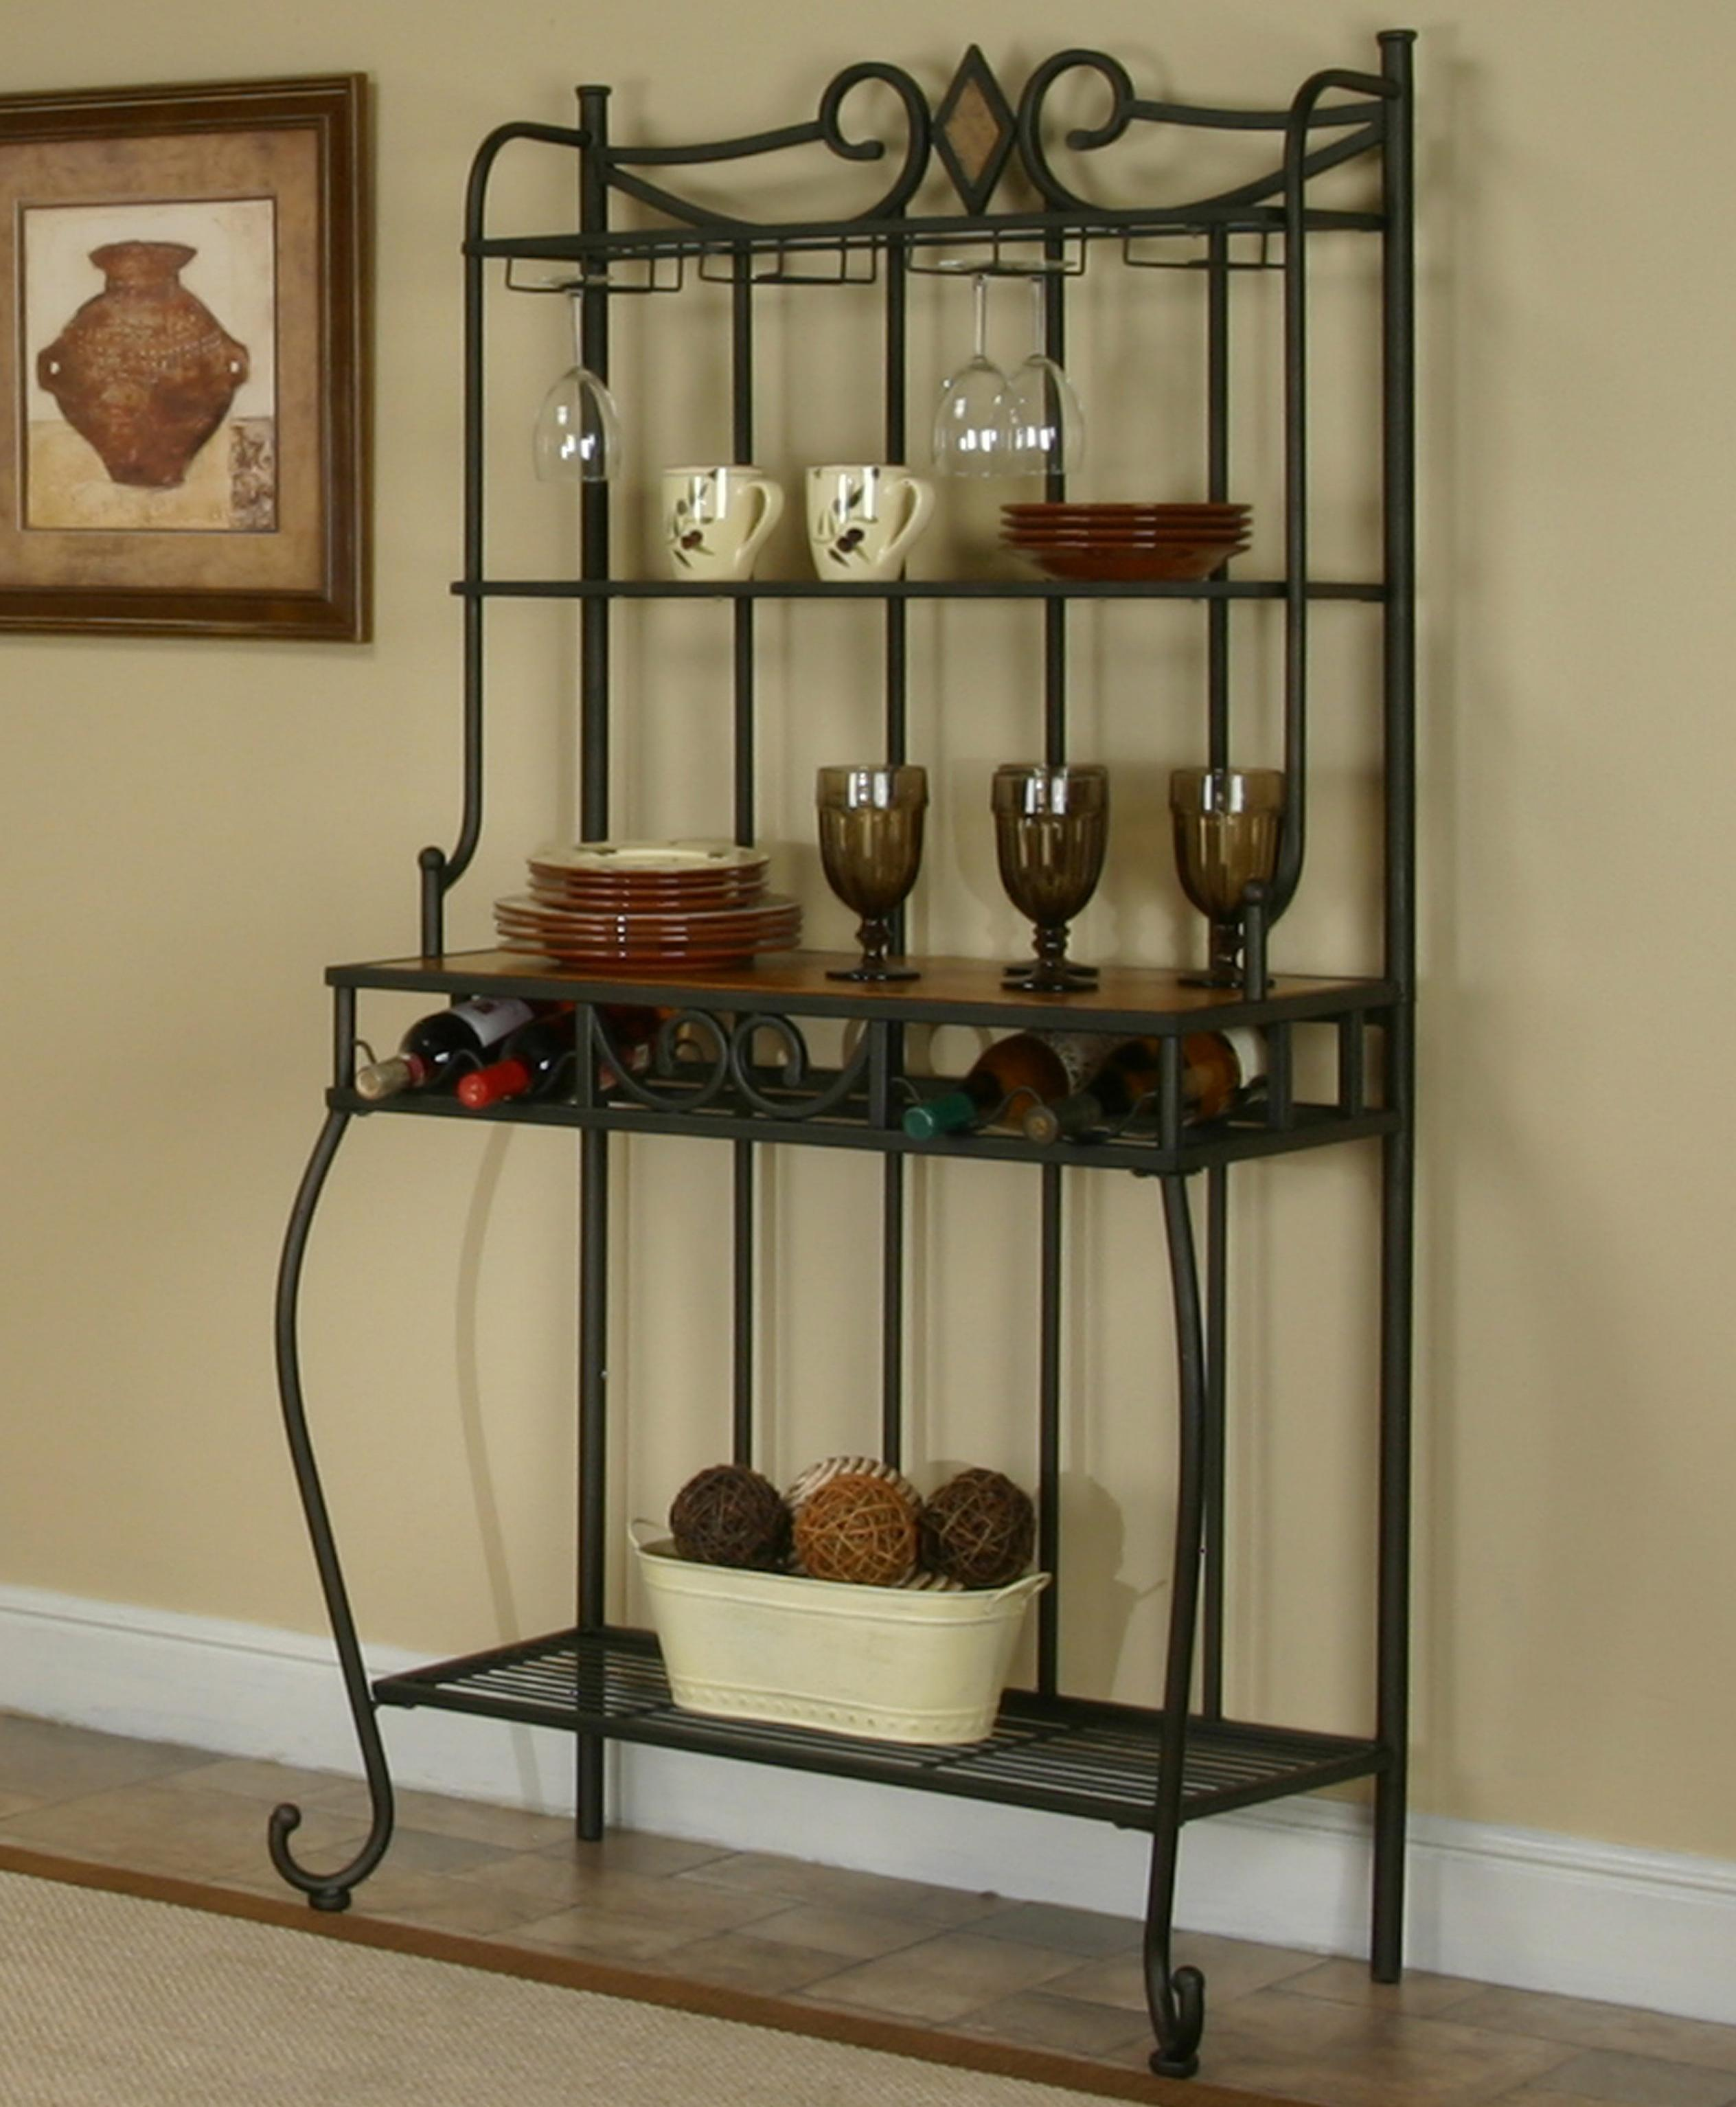 Cramco, Inc Cramco Trading Company - Dart Baker's Rack - Item Number: Y2091-85